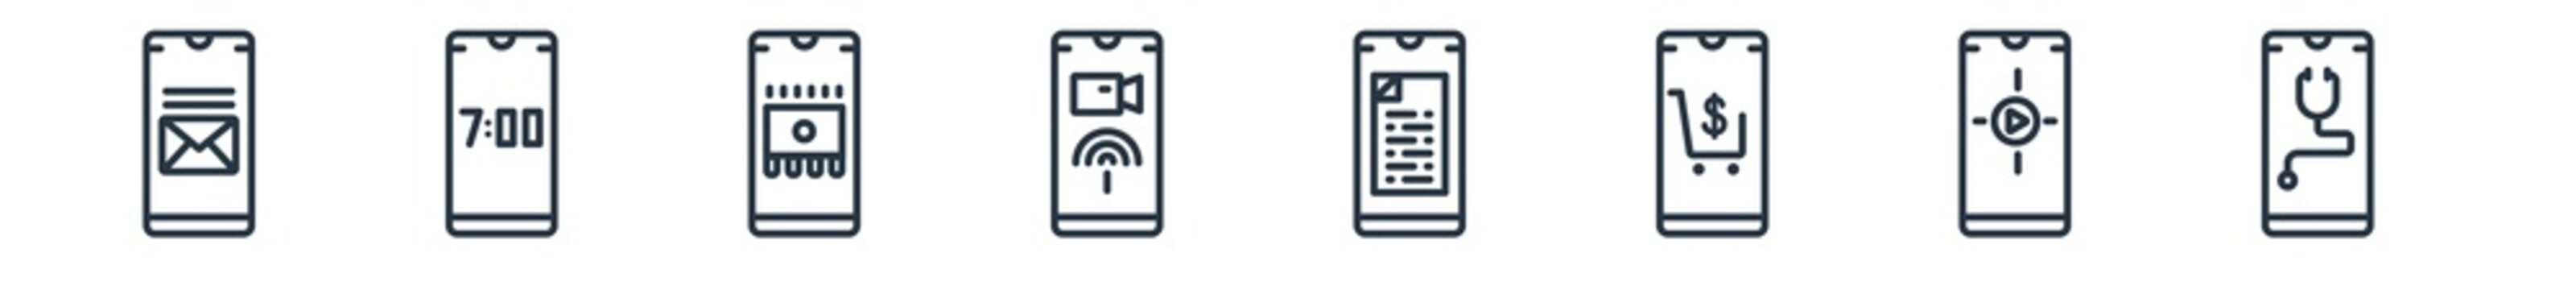 linear set of mobile app outline icons. line vector icons such as messages, digital clock, rom, videocall, news, medical app vector illustration.